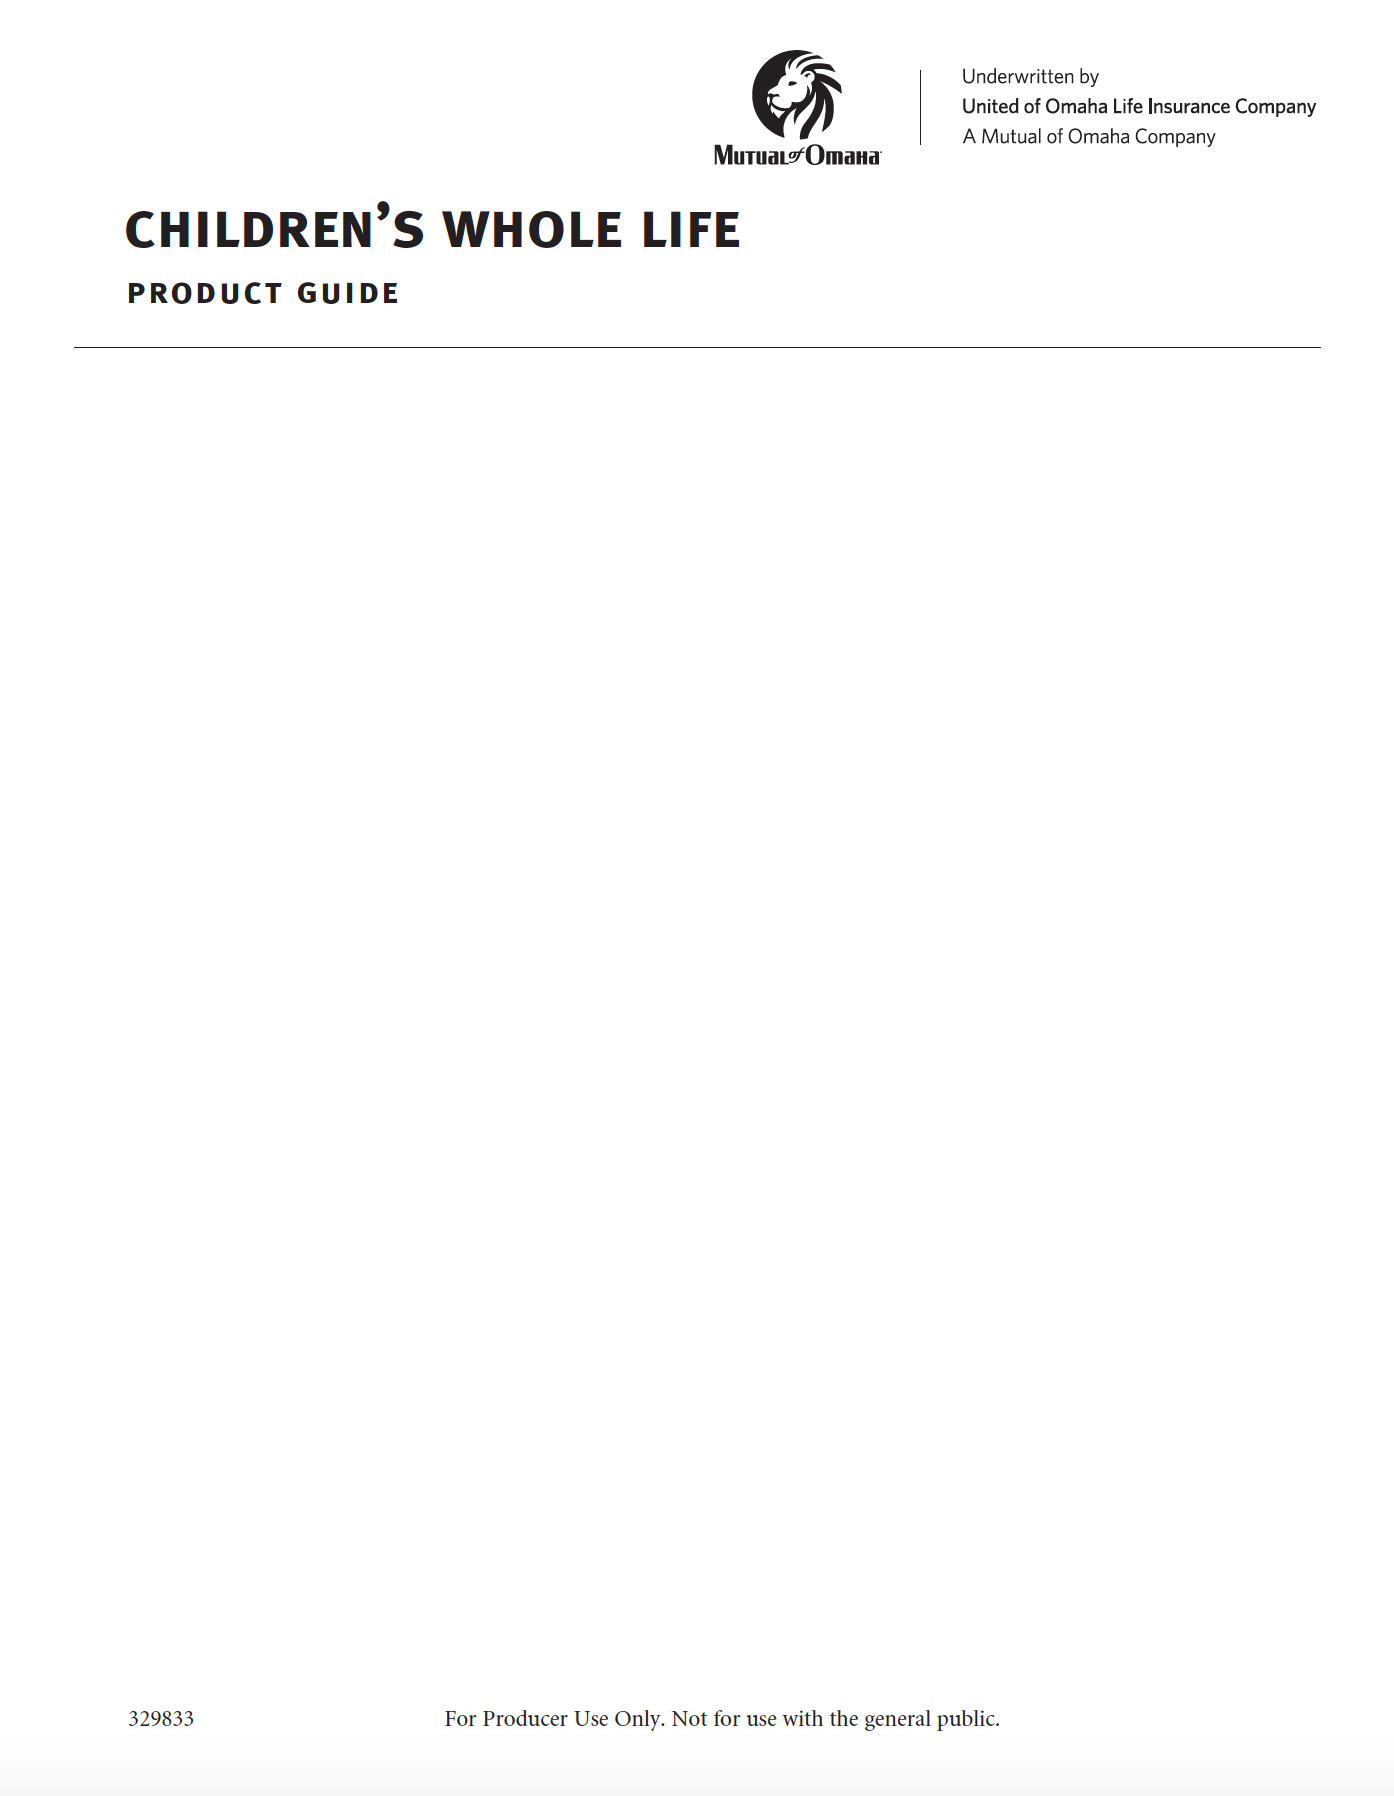 Children's Whole Life Product Guide